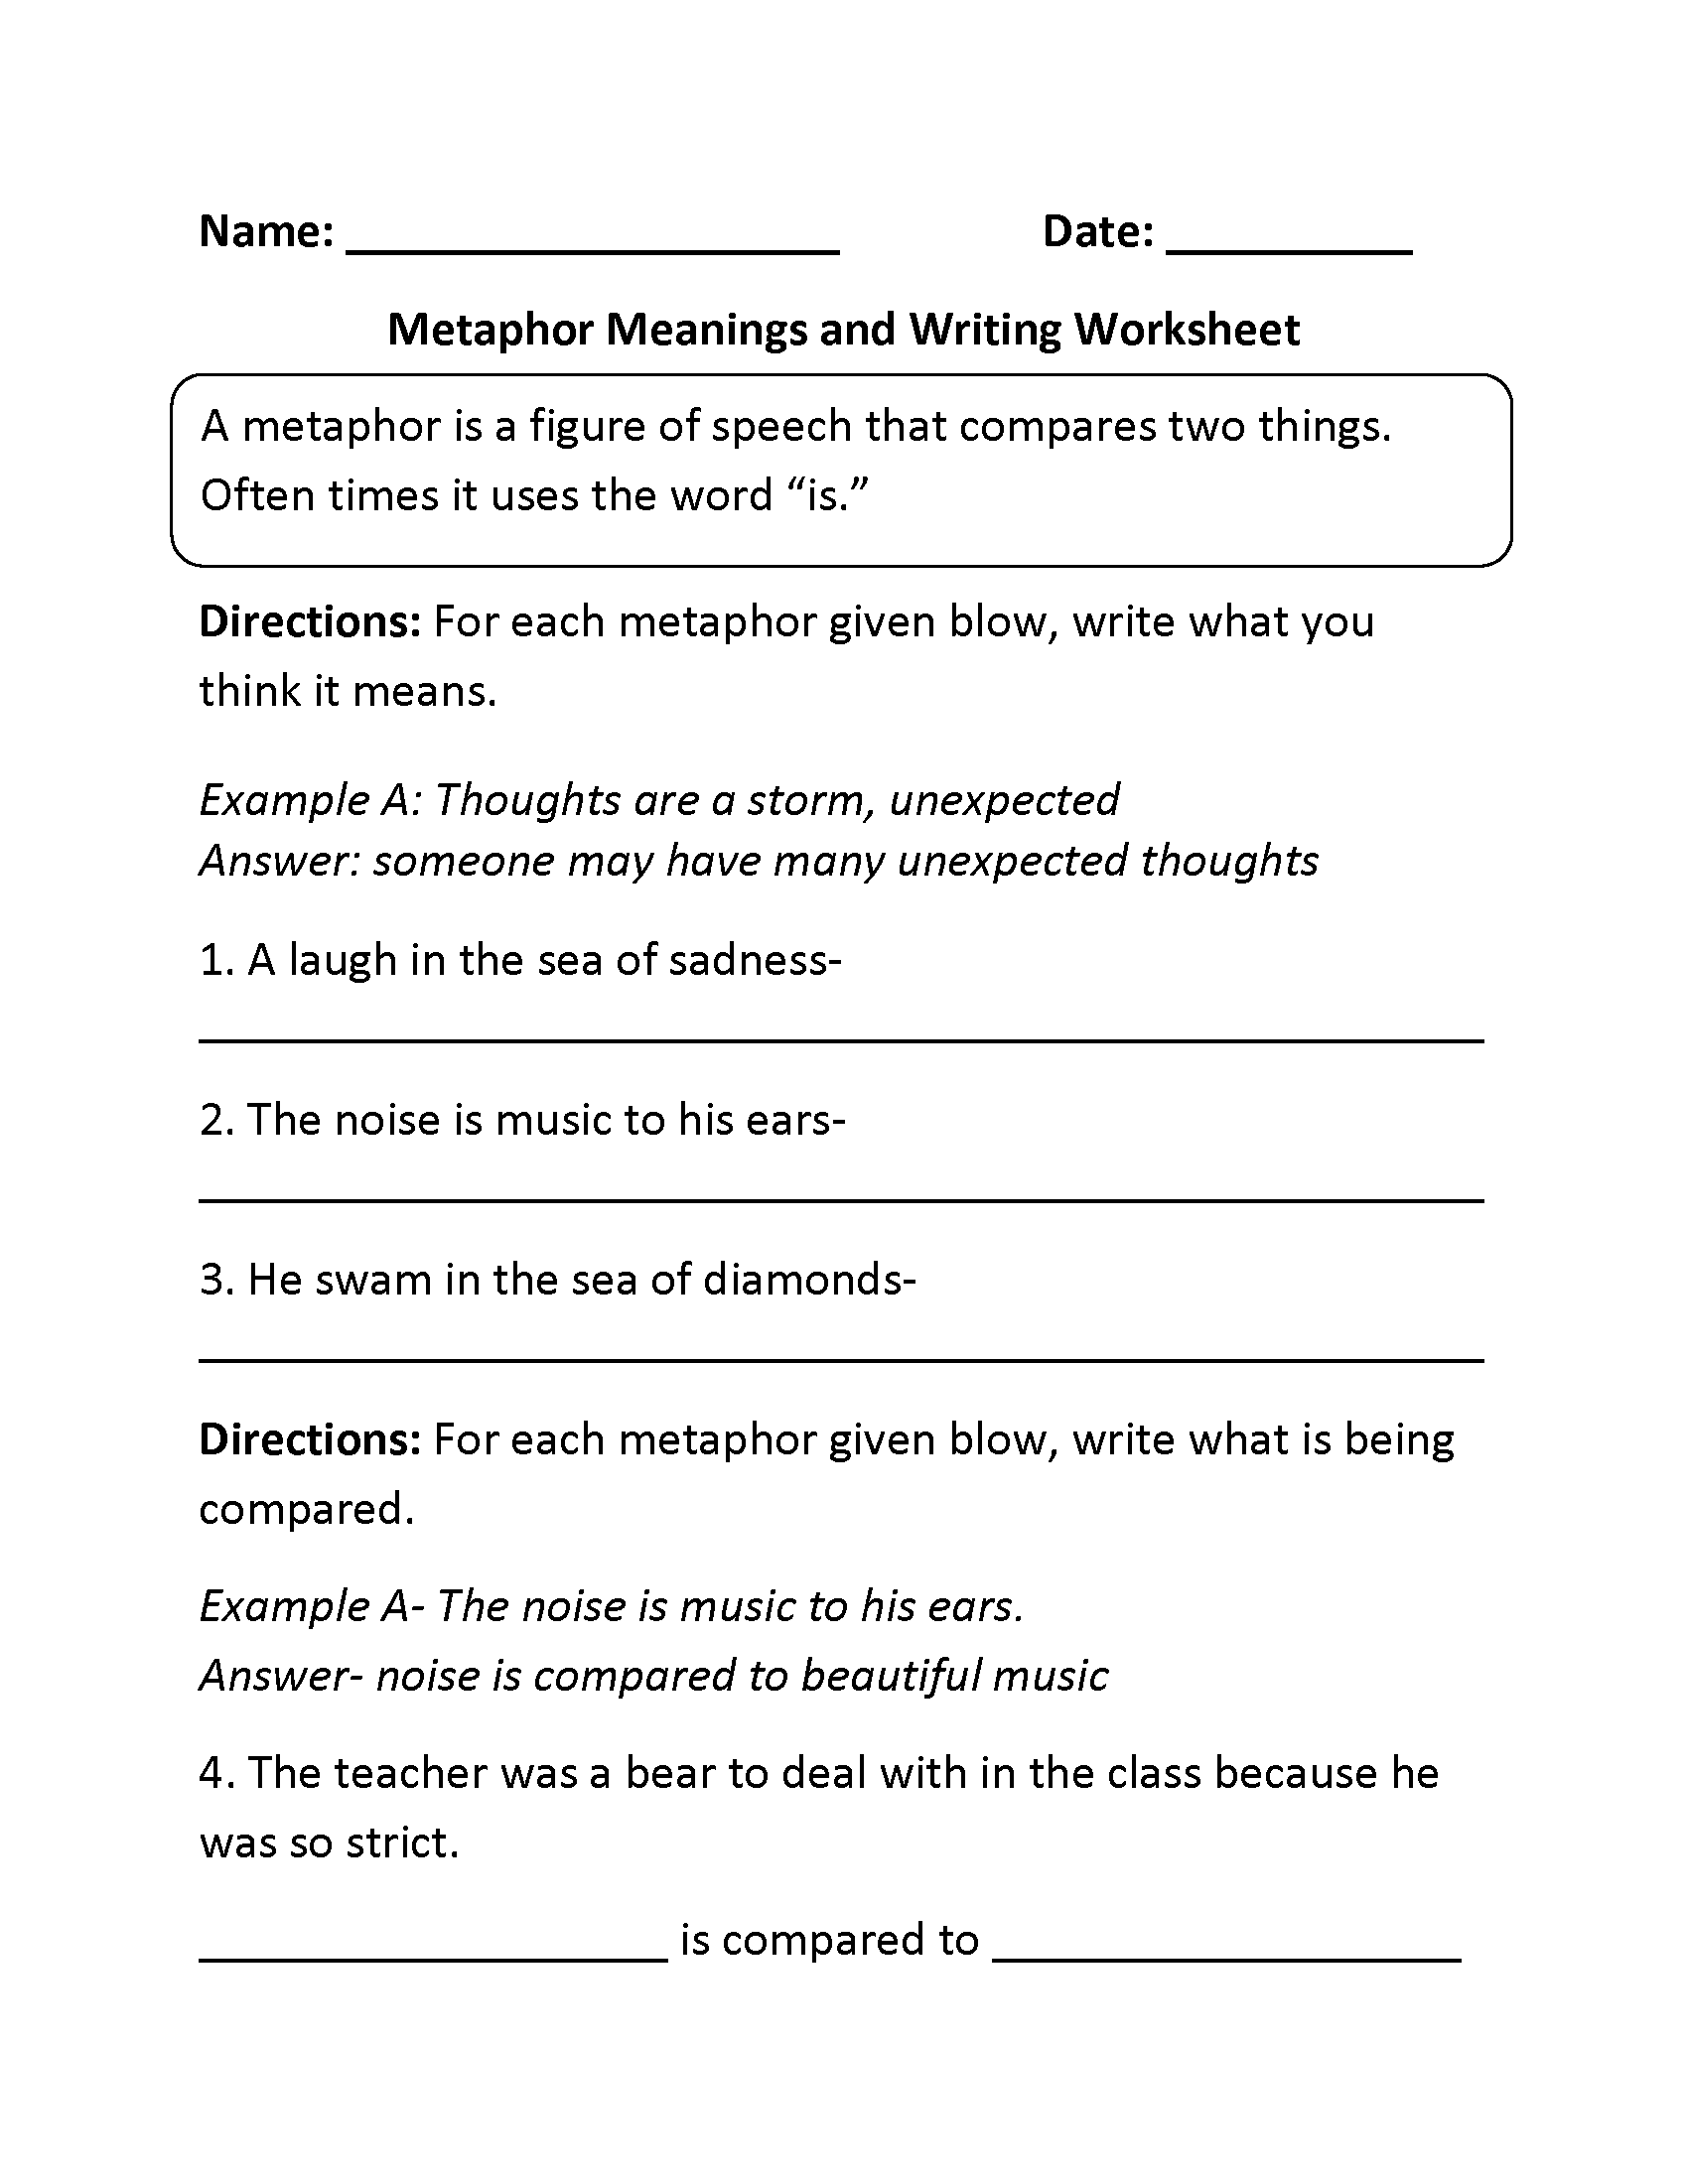 Comparing And Meanings Metaphors Worksheet Grammer Pinterest